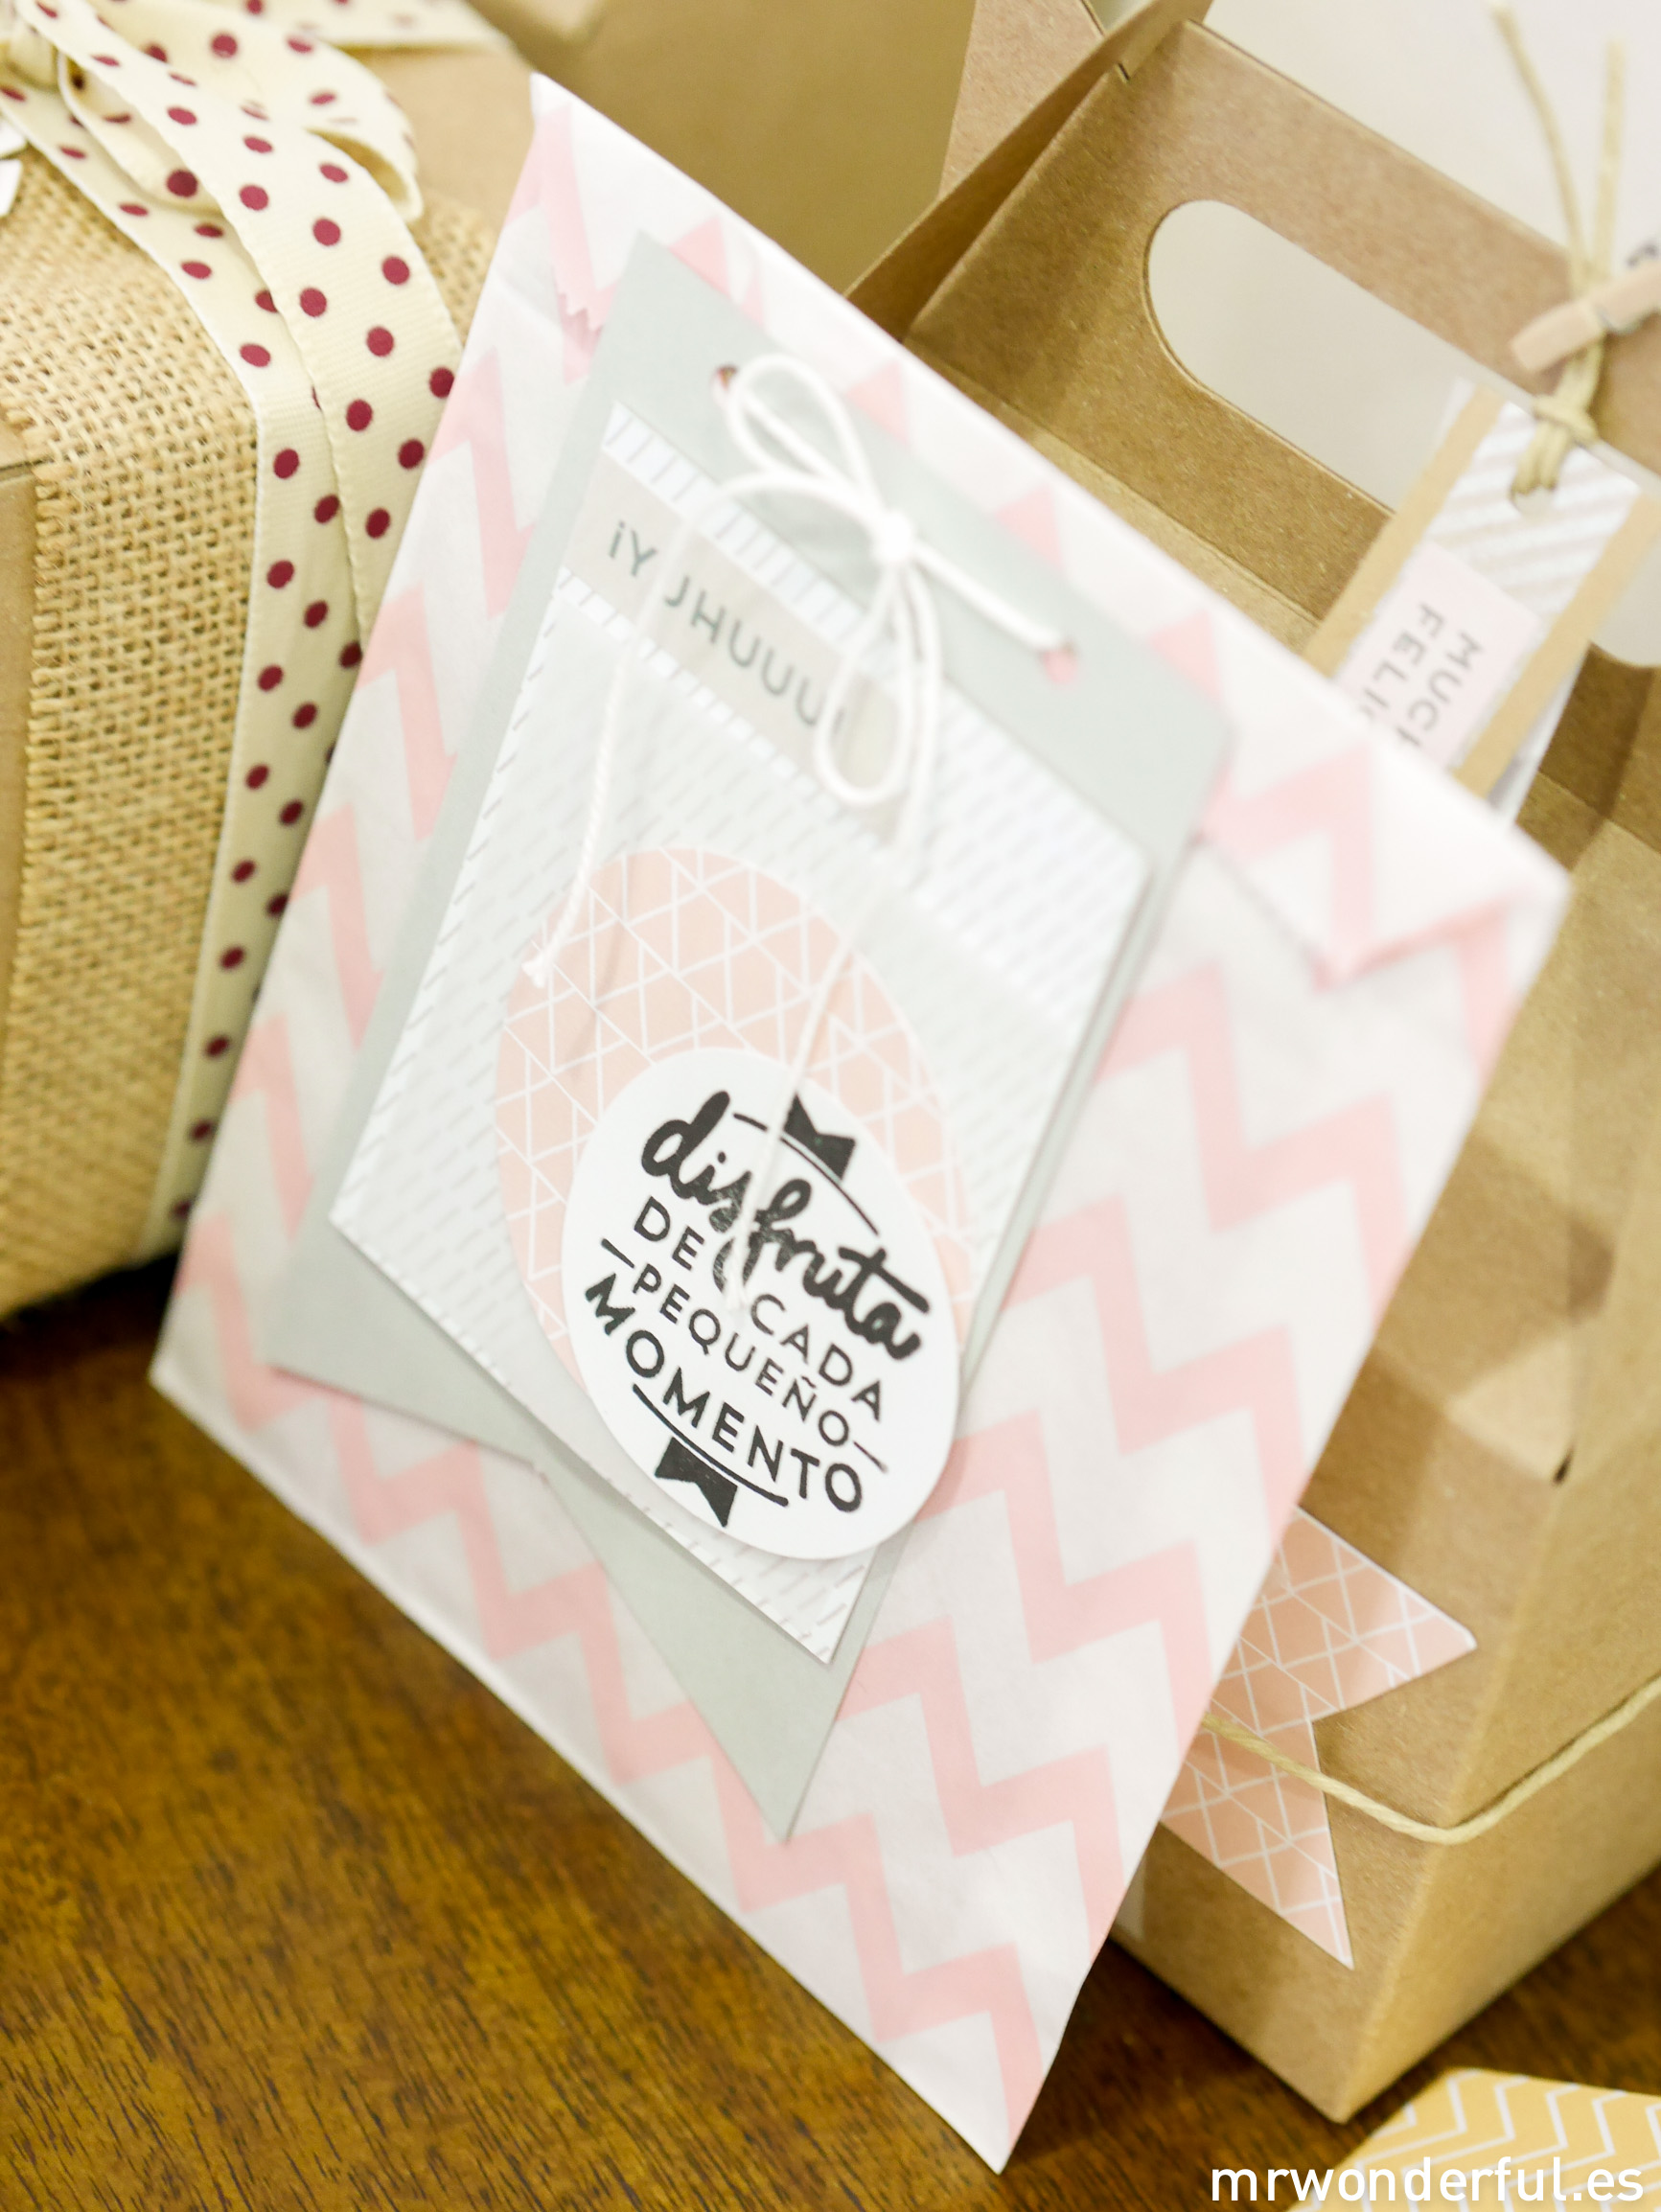 mrwonderful_Curso-Packaging_Bego_teaonthemoon-156